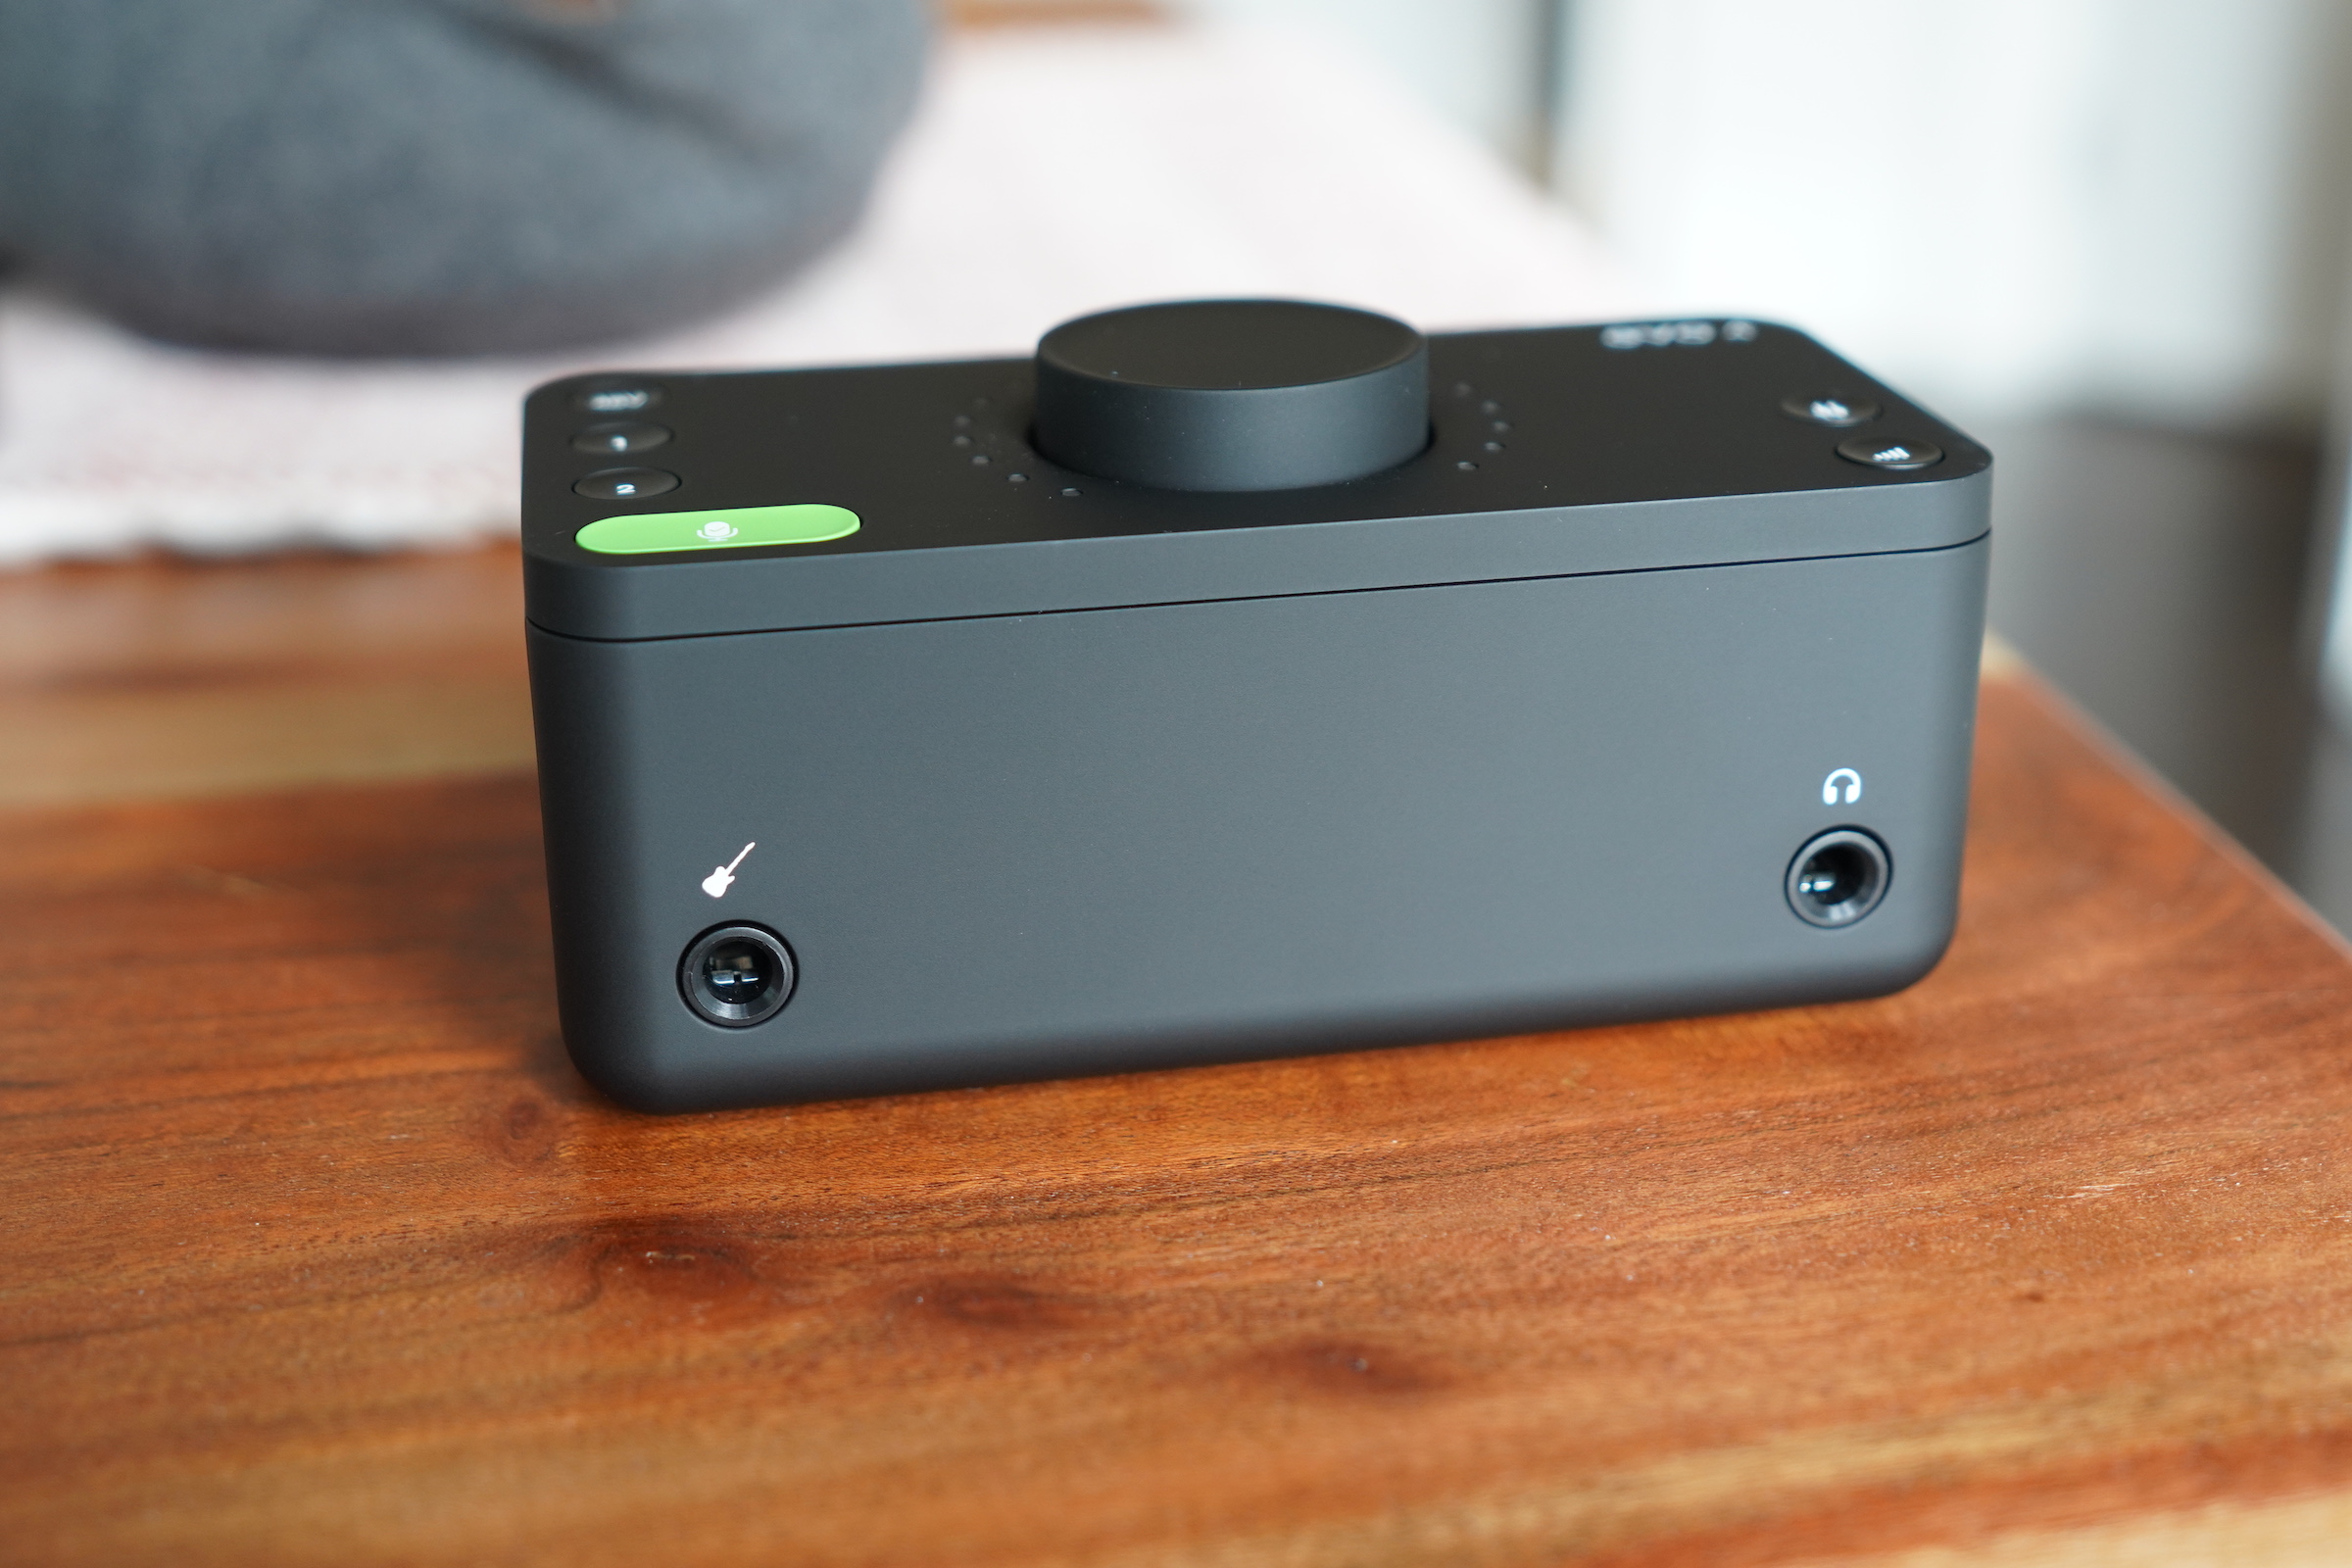 Audient's EVO 4 is a sleek, modern USB audio interface with useful smart features – TechCrunch